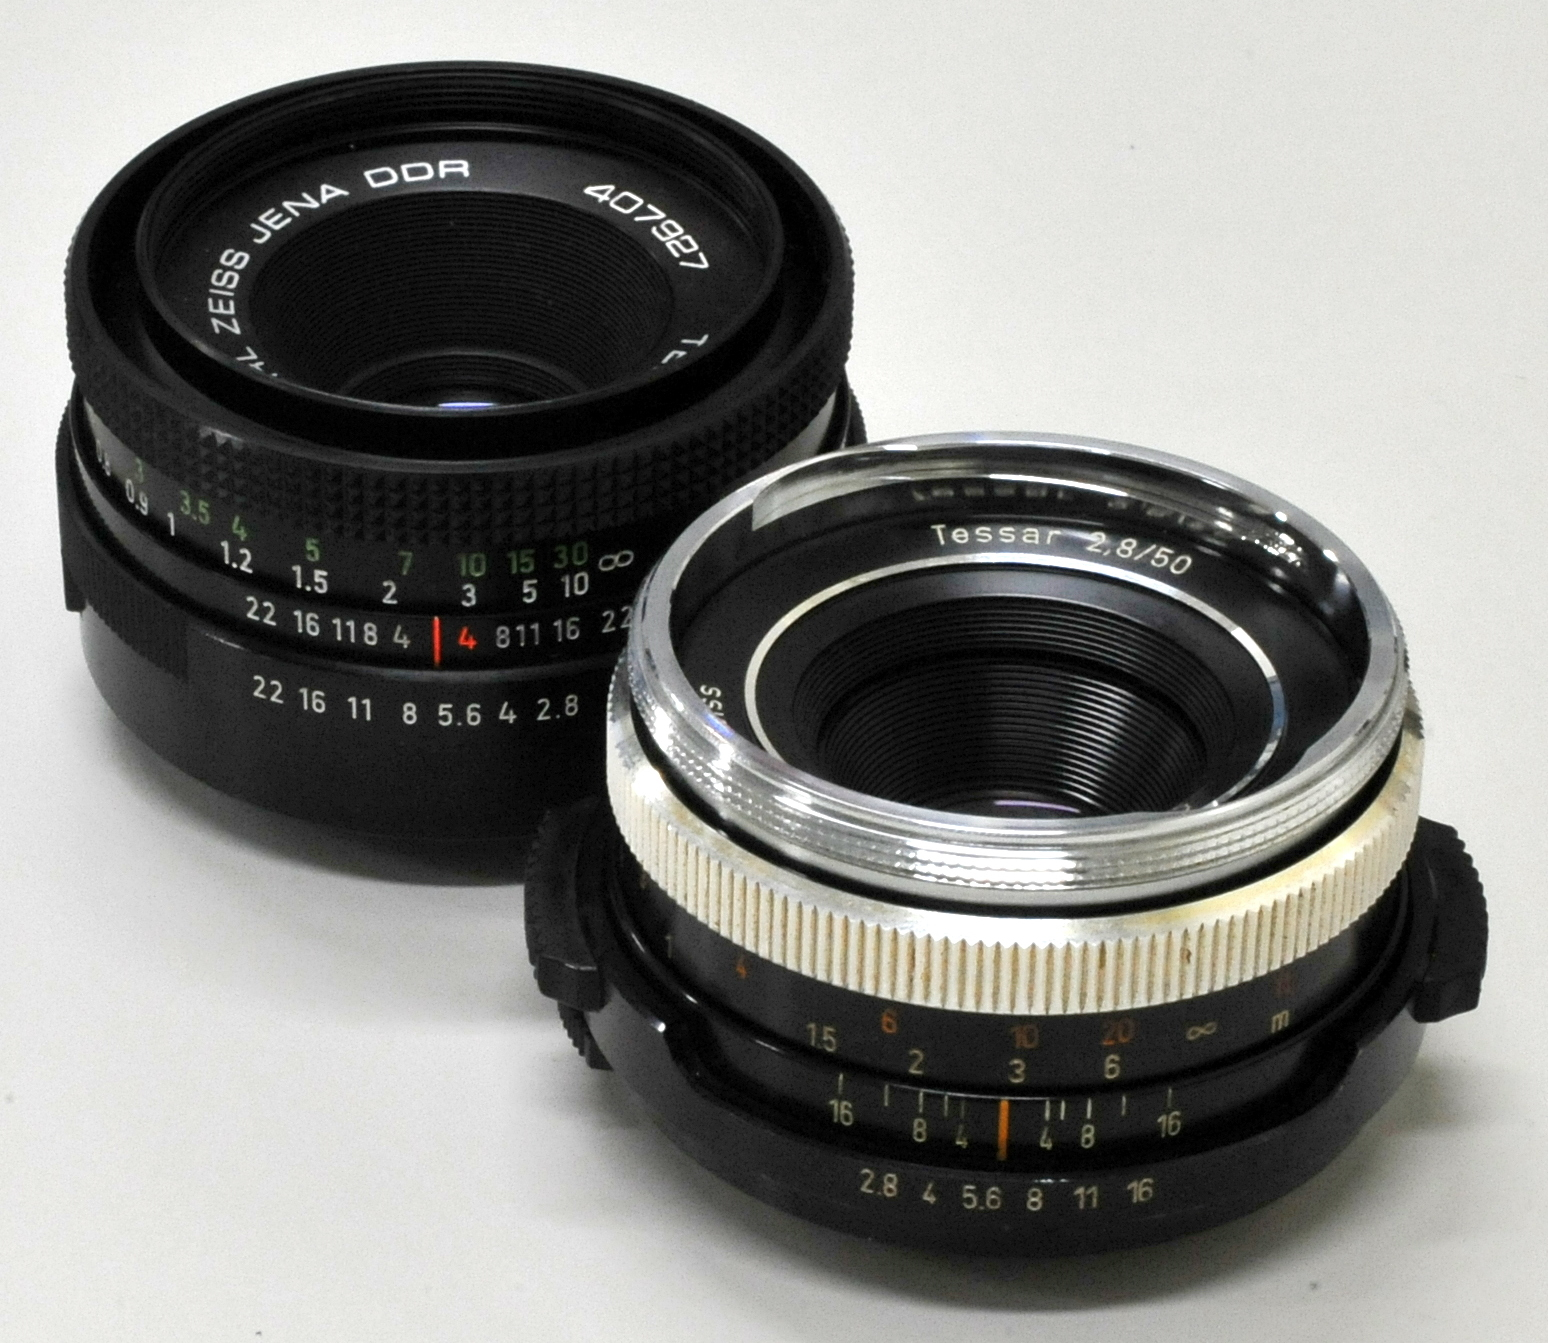 dating carl zeiss)